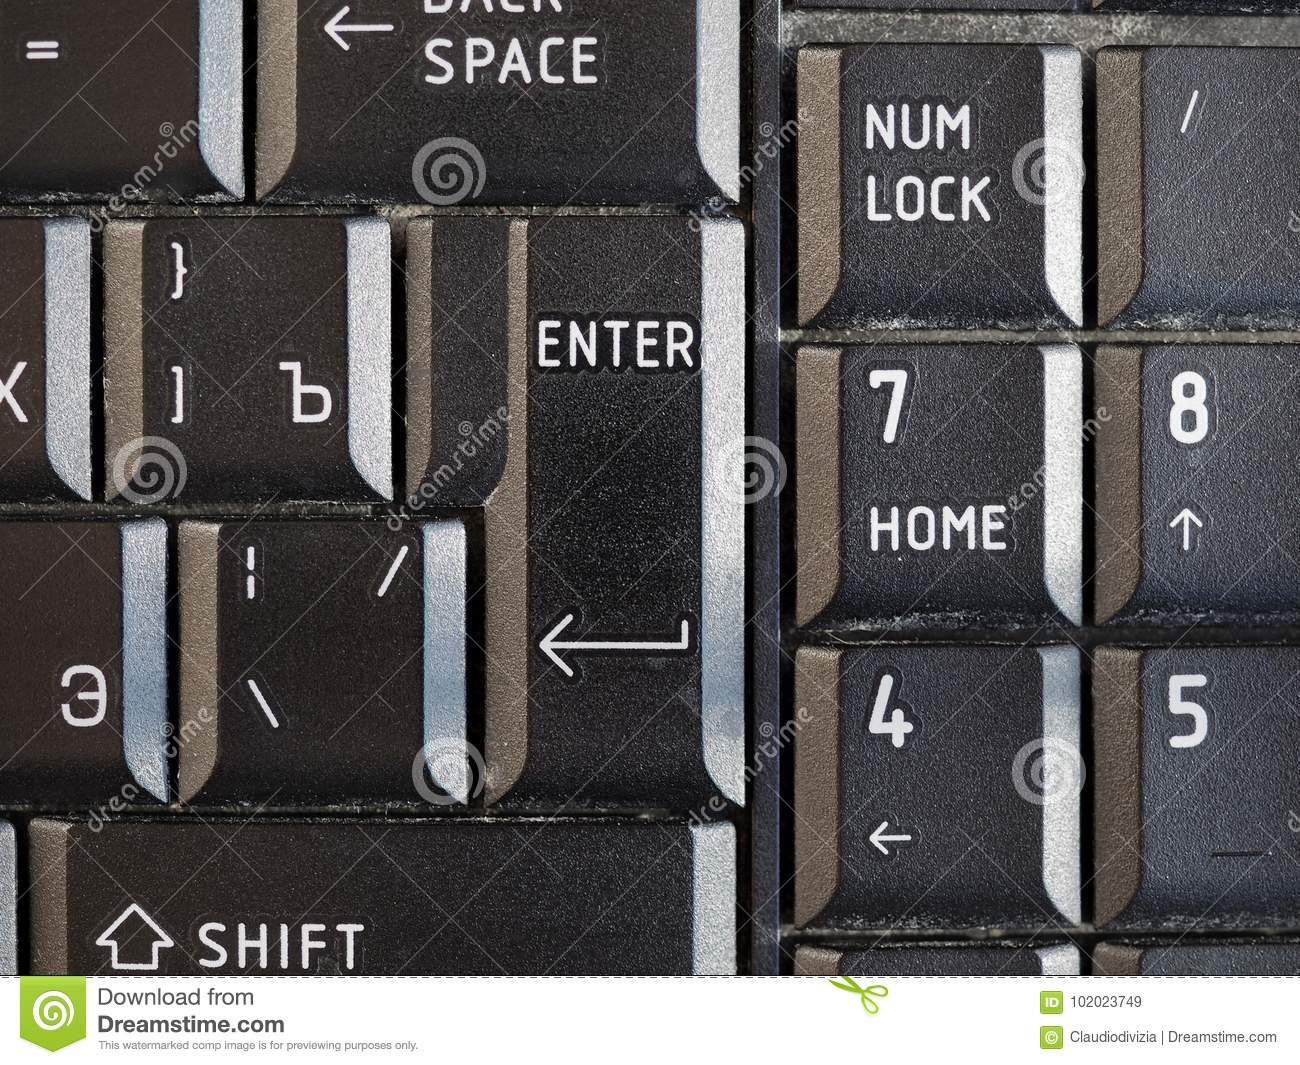 dcaa58b06a4 Hybrid Russian and English qwerty computer keyboard with both Cyrillic and Latin  alphabet letters. More similar stock images